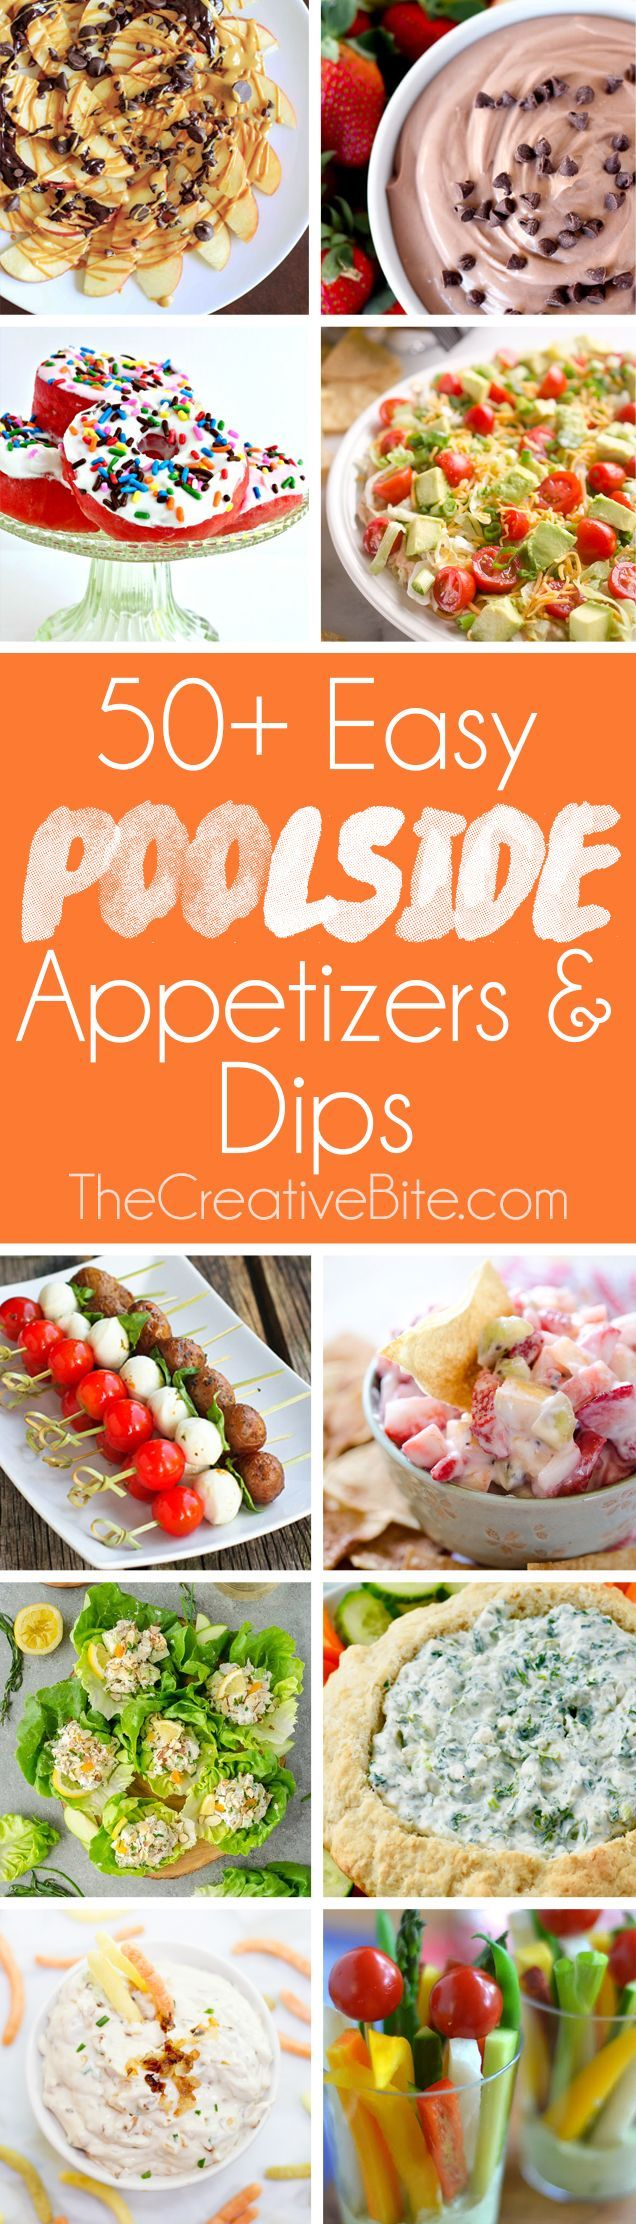 50+ Easy Poolside Appetizers & Dips are a collection of delicious recipes perfect for a hot summer day chilling by the water. No one wants a hot and heavy dish when it is blazing hot outside, but these lighter recipes are perfectly refreshing. From sweet